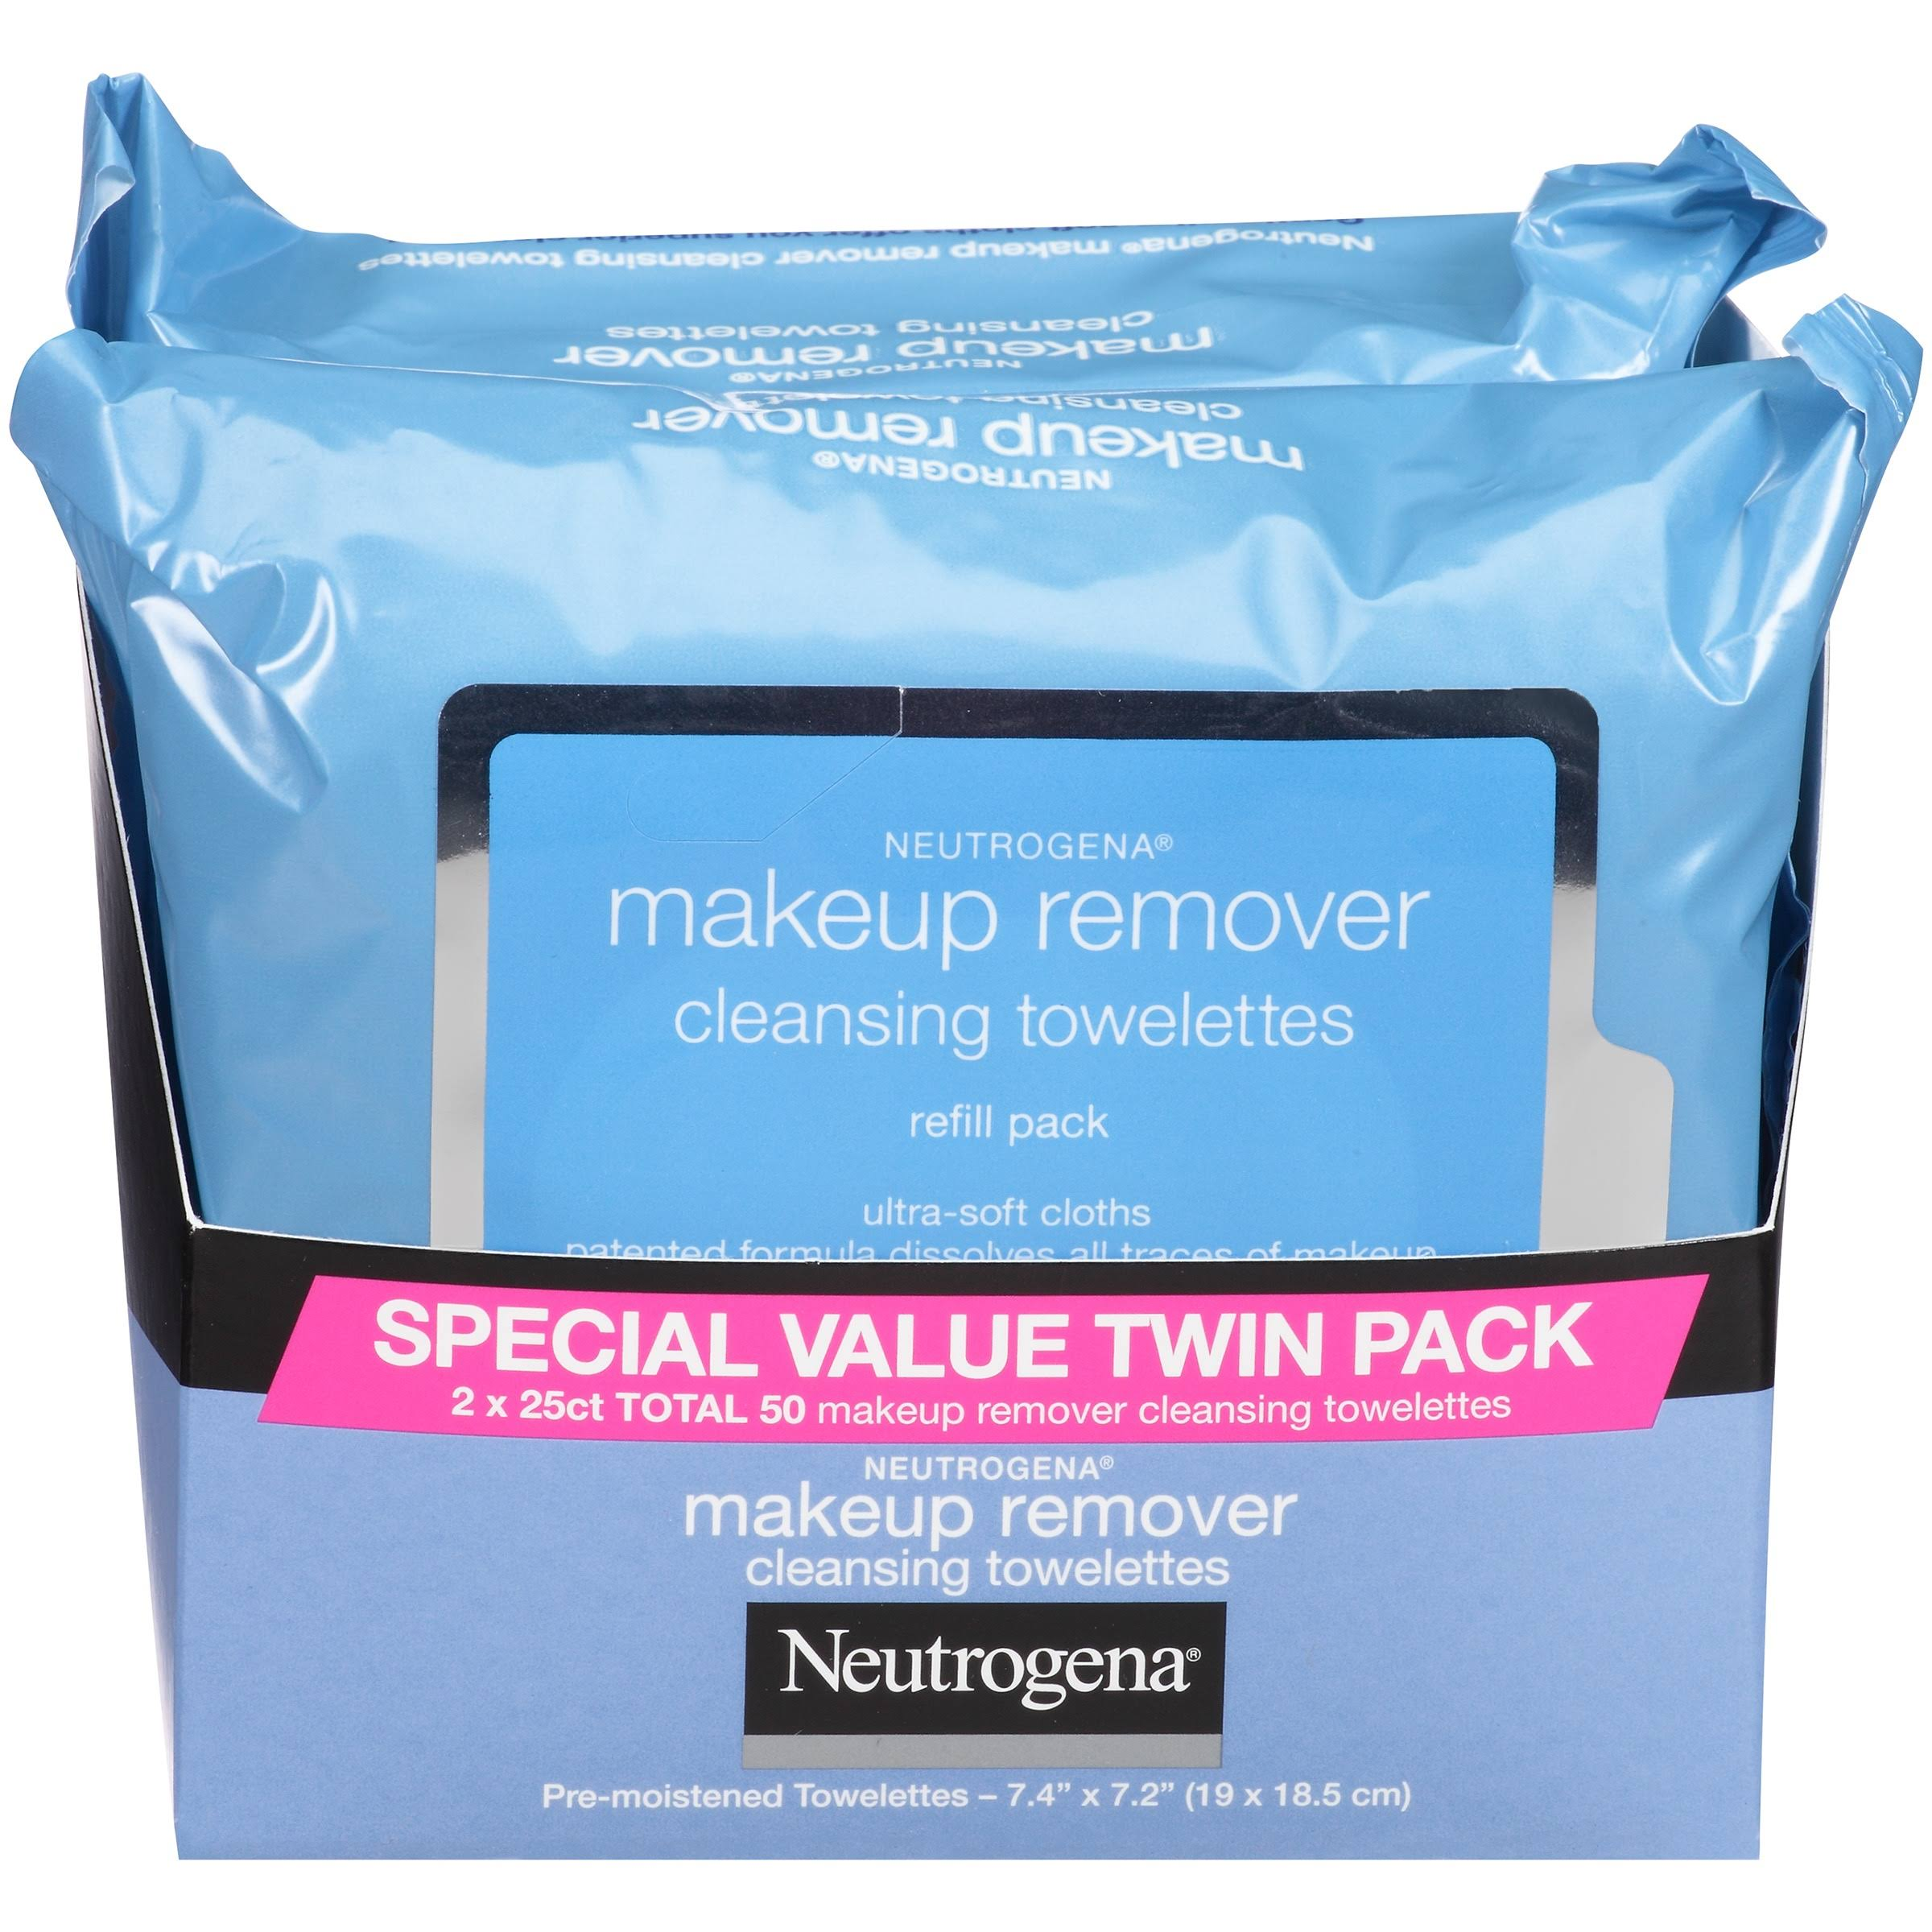 Neutrogena Cleansing Towelettes Makeup Remover Refill Pack - 50ct